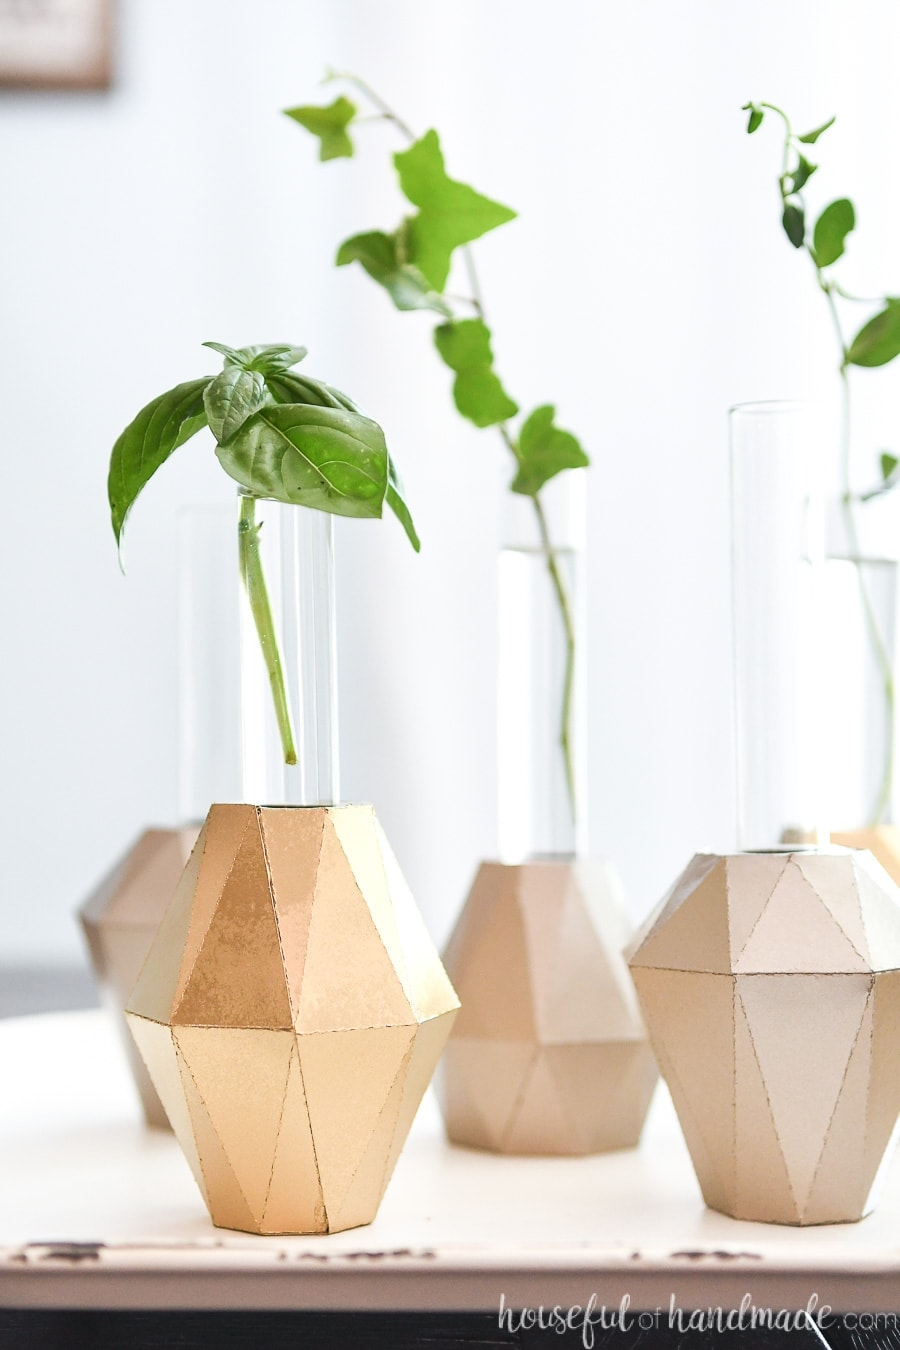 Gold painted jewel shaped bases for test tube holders with plant clippings in them.